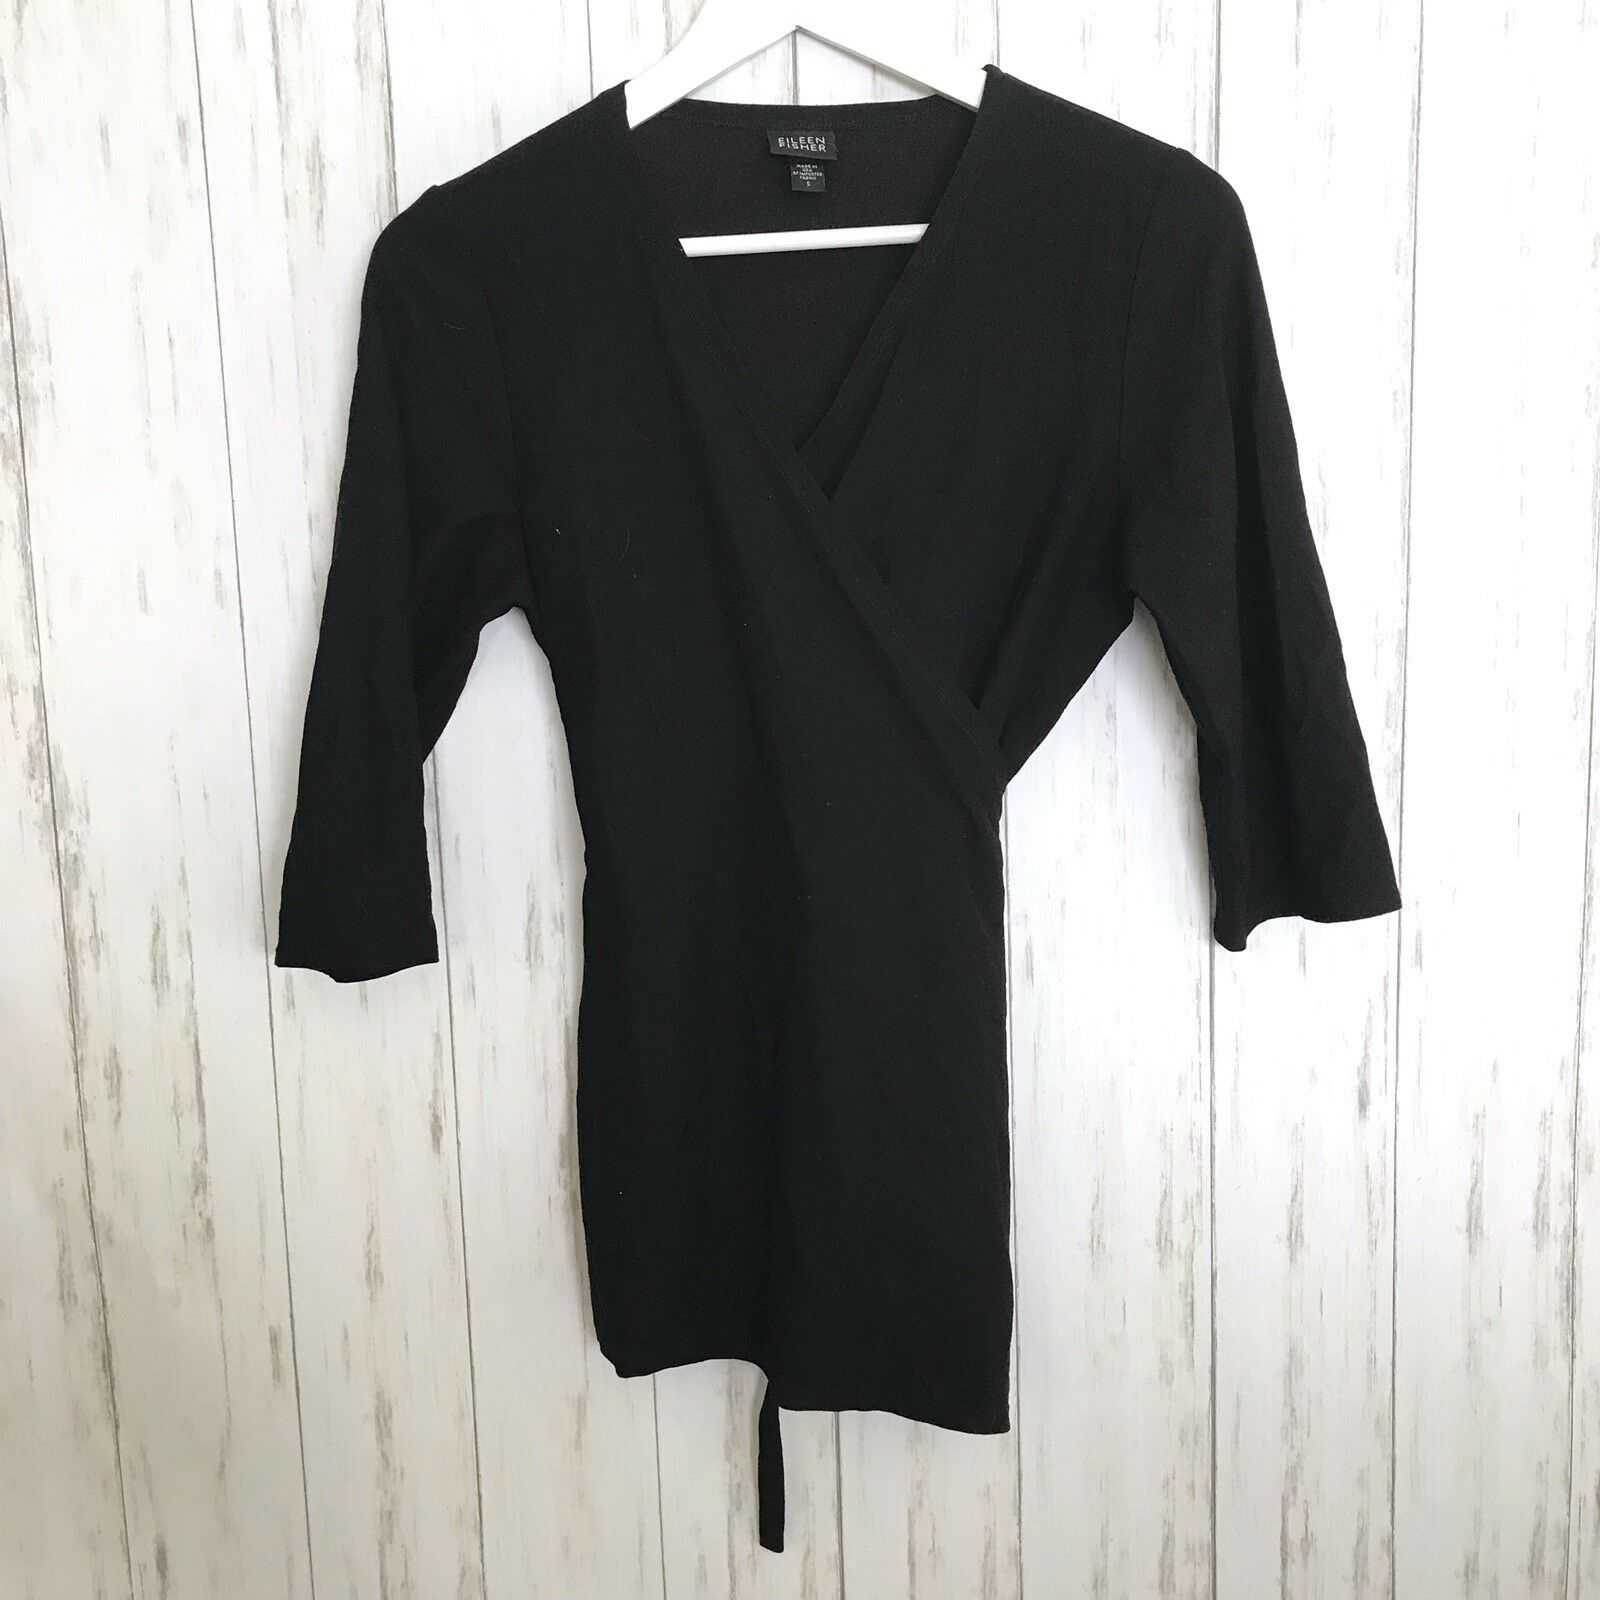 Eileen Fisher Small Solid schwarz Wrap V-neck Top Blouse 3 4 Sleeve Made In USA